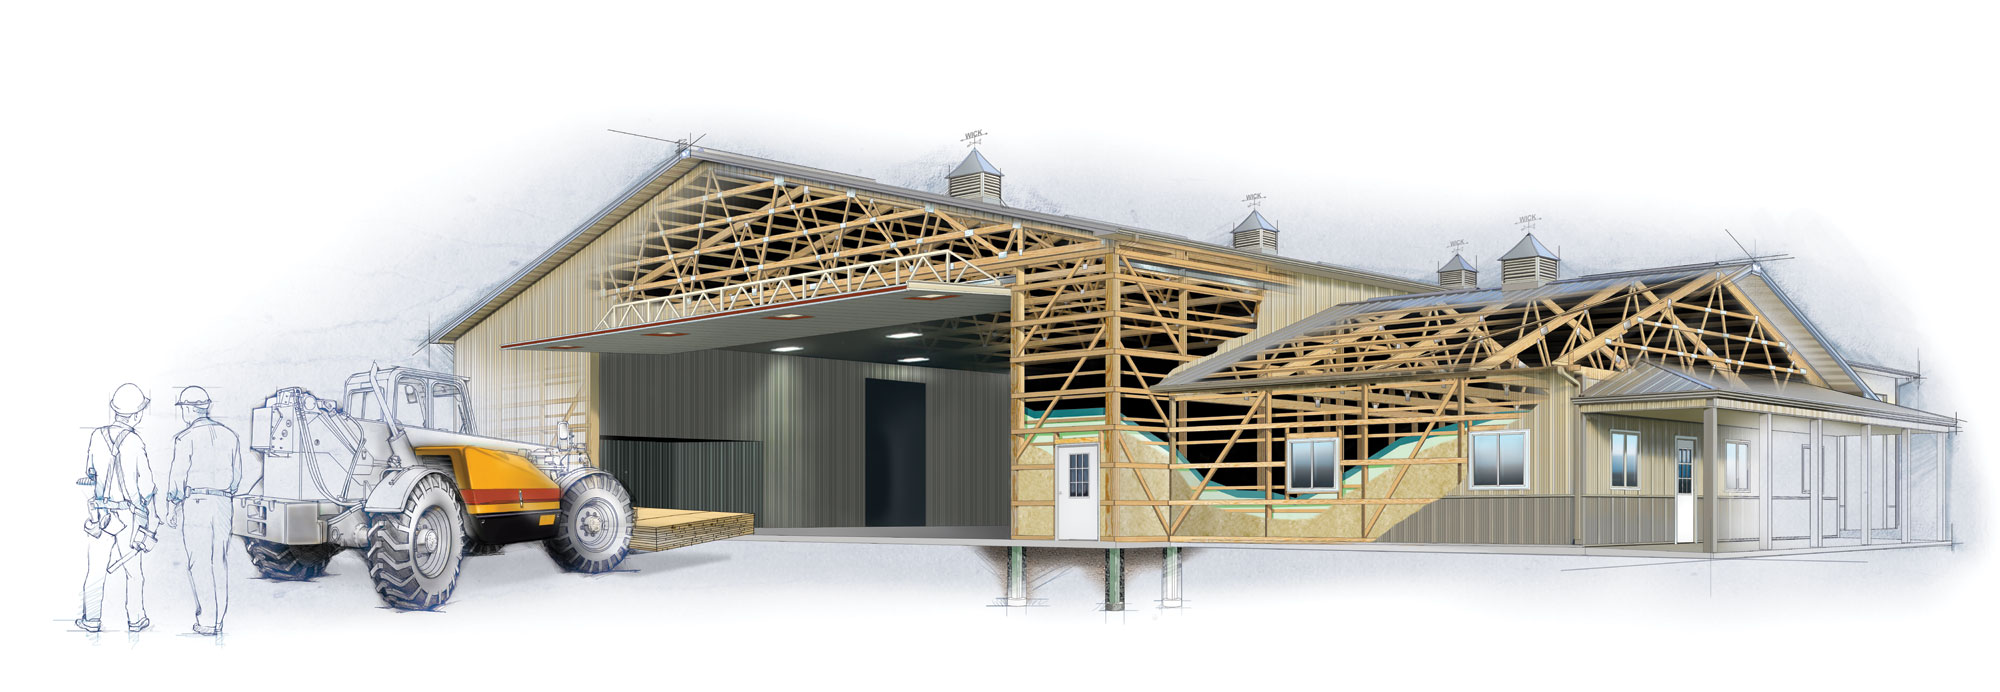 Post frame construction | Wise Construction Services, Yorkville, IL ...